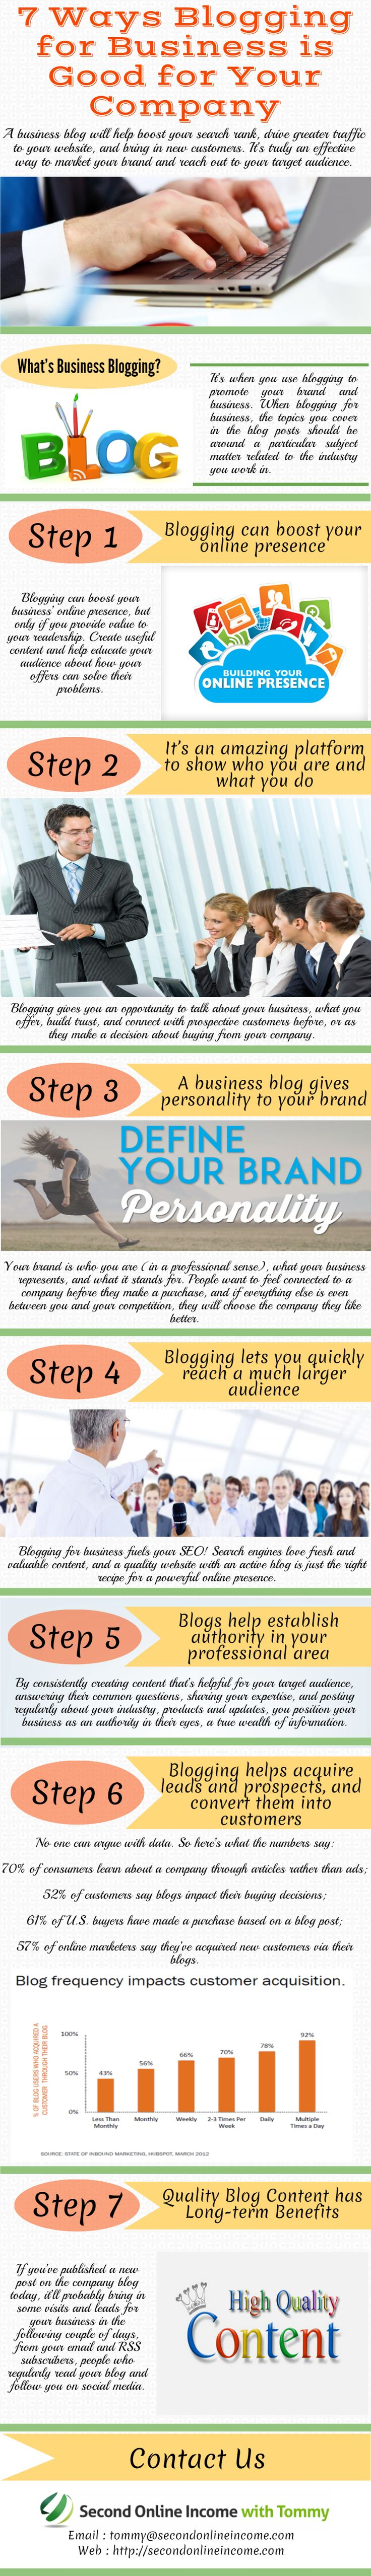 7 Ways Blogging for Business is Good for Your Company [Infographic]